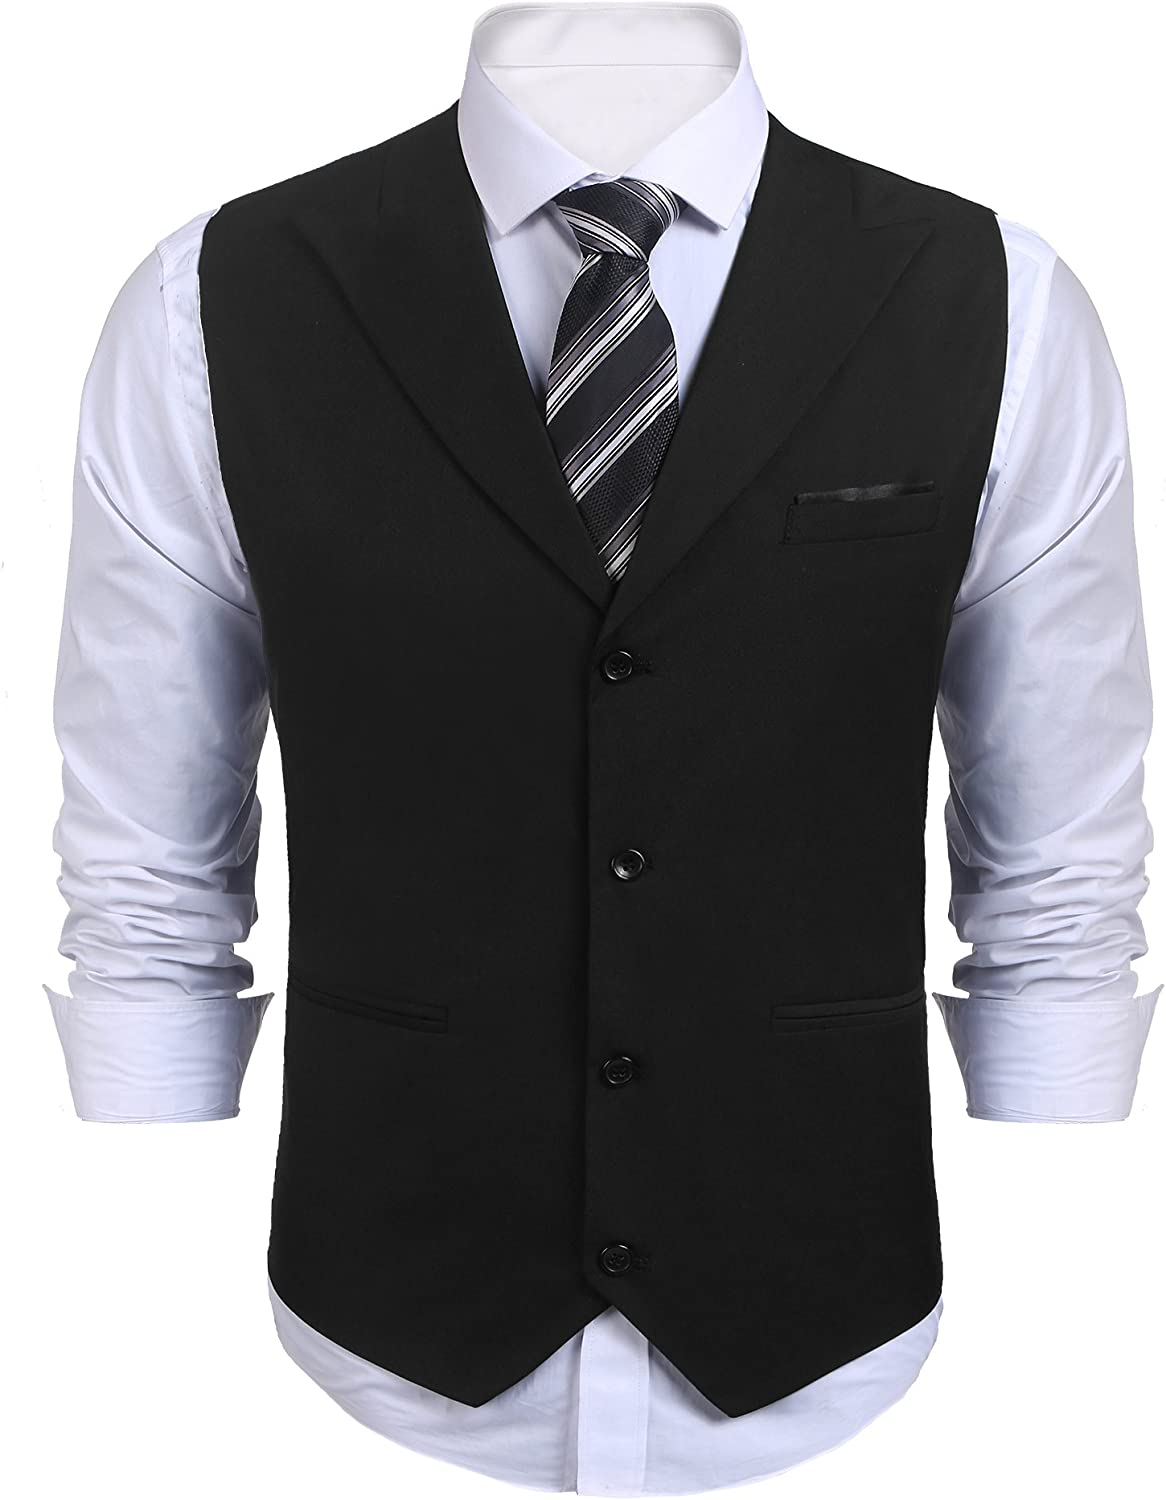 COOFANDY Mens Business Suits Vest Slim Fit V-Neck Sleeveless Wedding Waistcoat